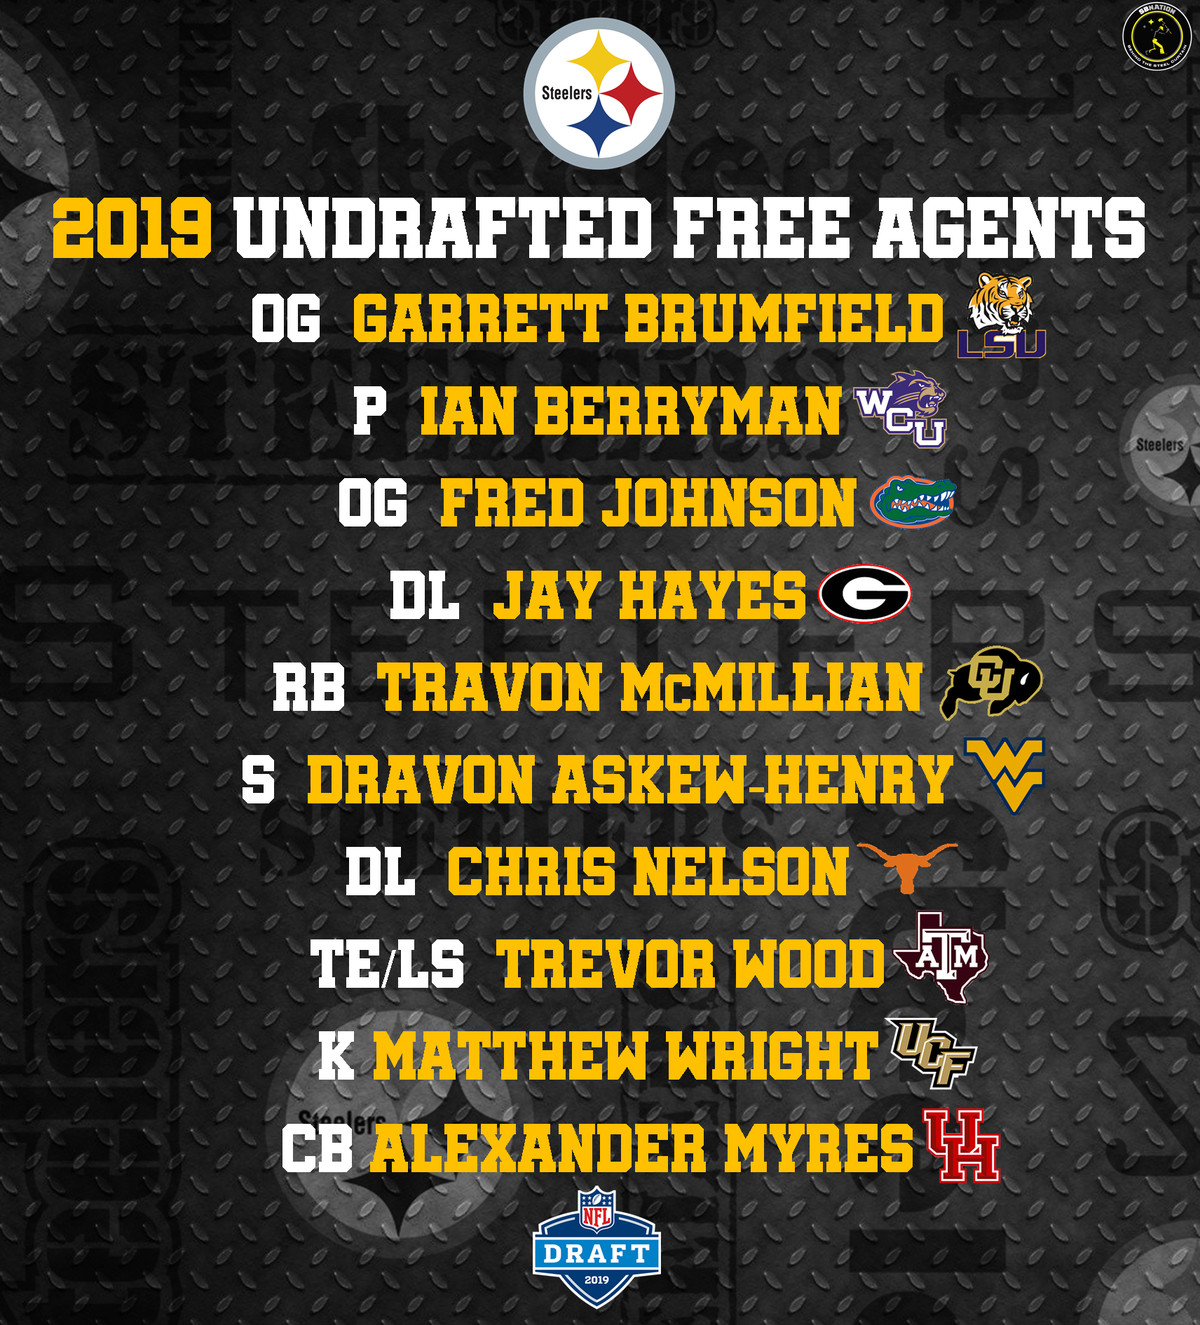 Steelers 2019 Undrafted Free Agent Tracker All Signings And Rumors